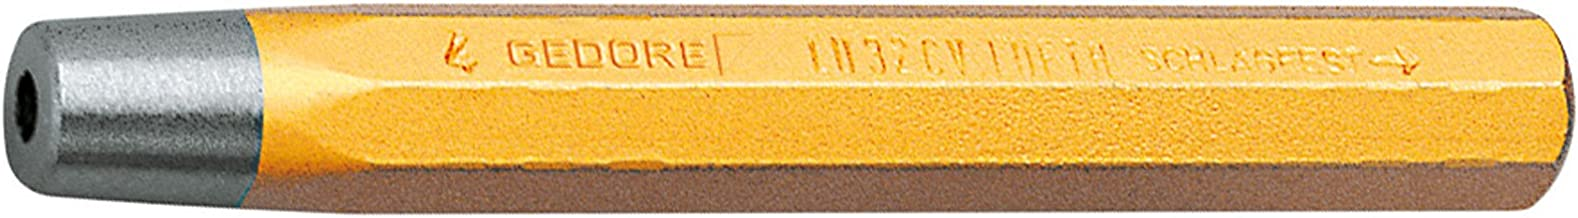 GEDORE 8774250 126-4 nitdragare 4 mm